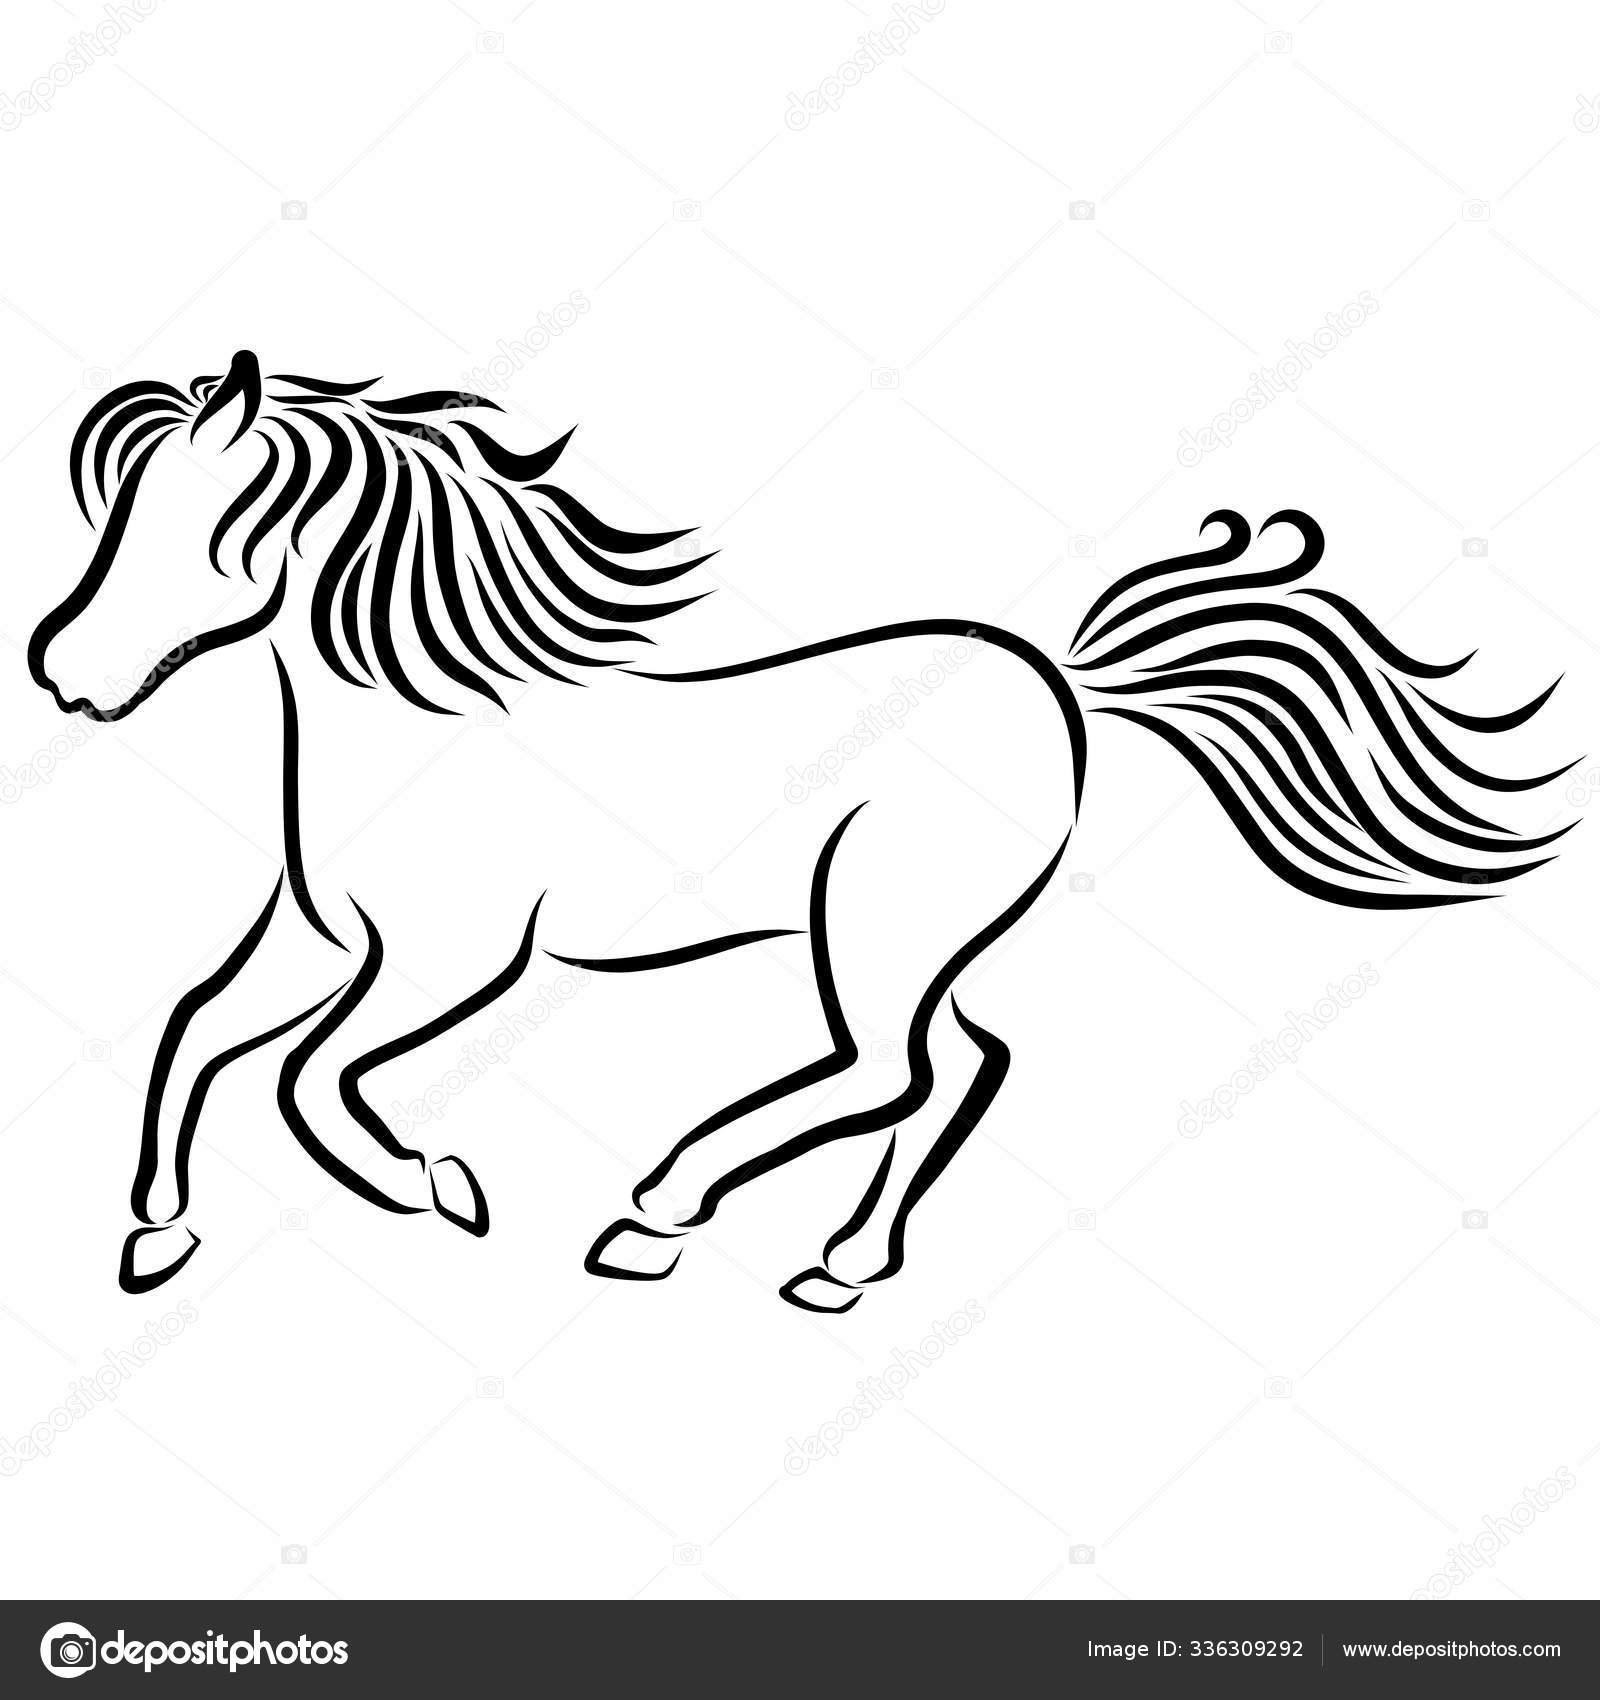 Running Horse Black Outline On A White Background Stock Photo C Yuliya Nazaryan 336309292